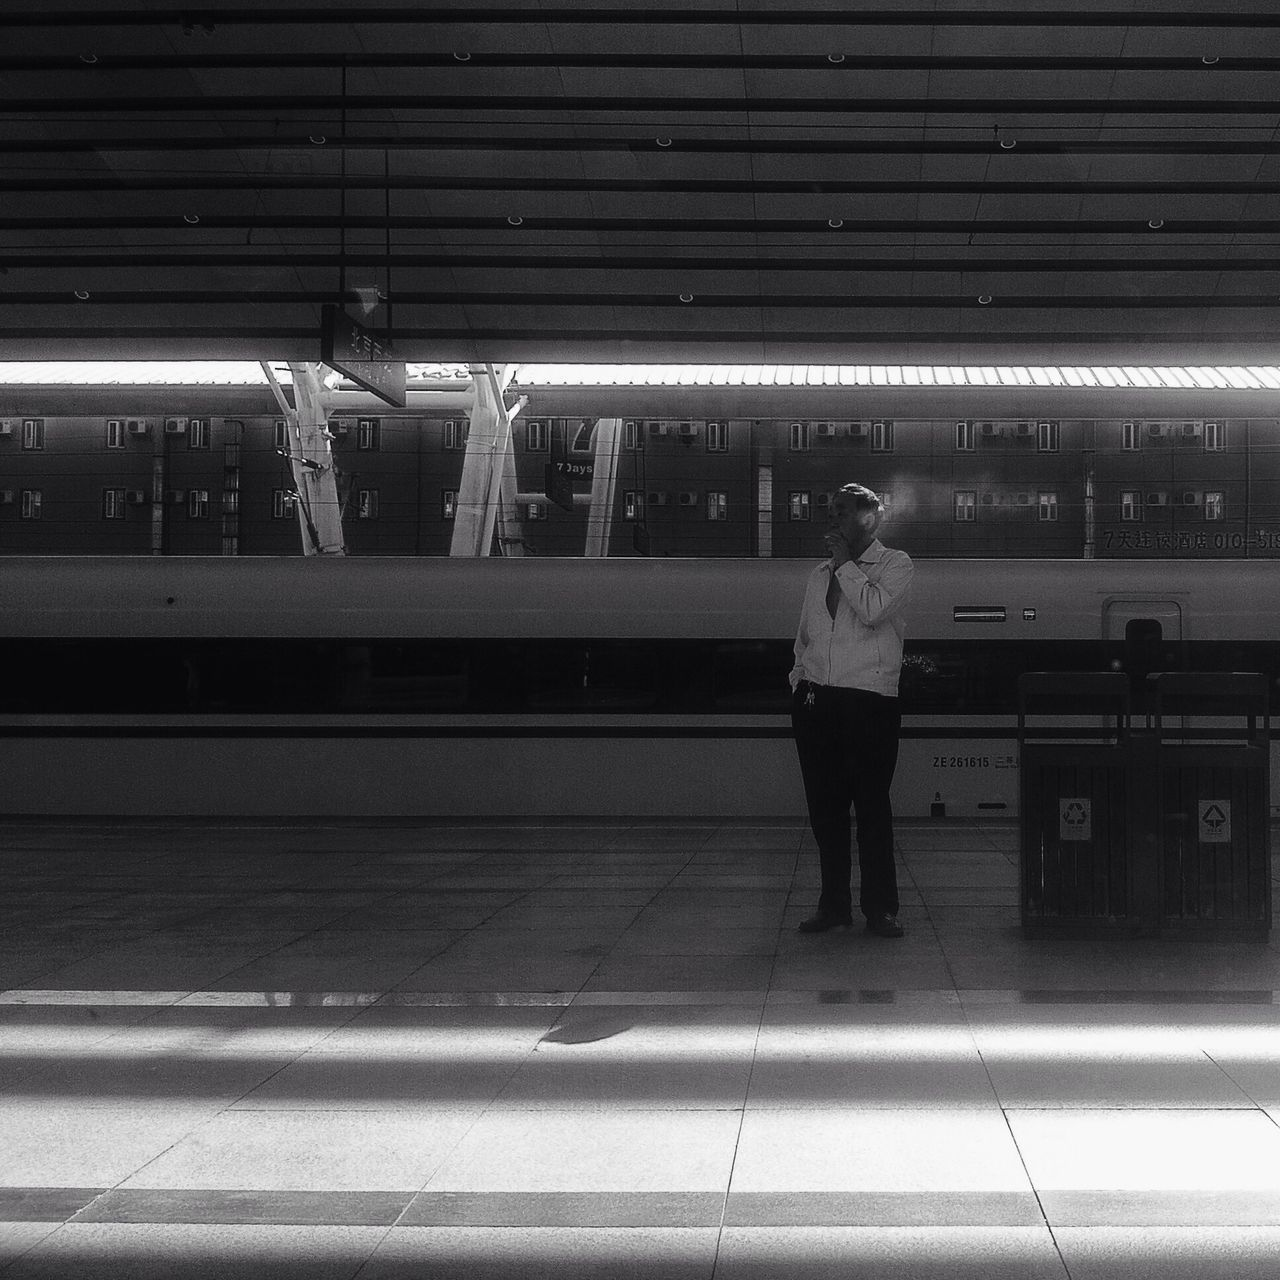 Picturing Individuality People Light And Shadow Lines IPhoneography Train Station Train Monochrome Blackandwhite Portrait